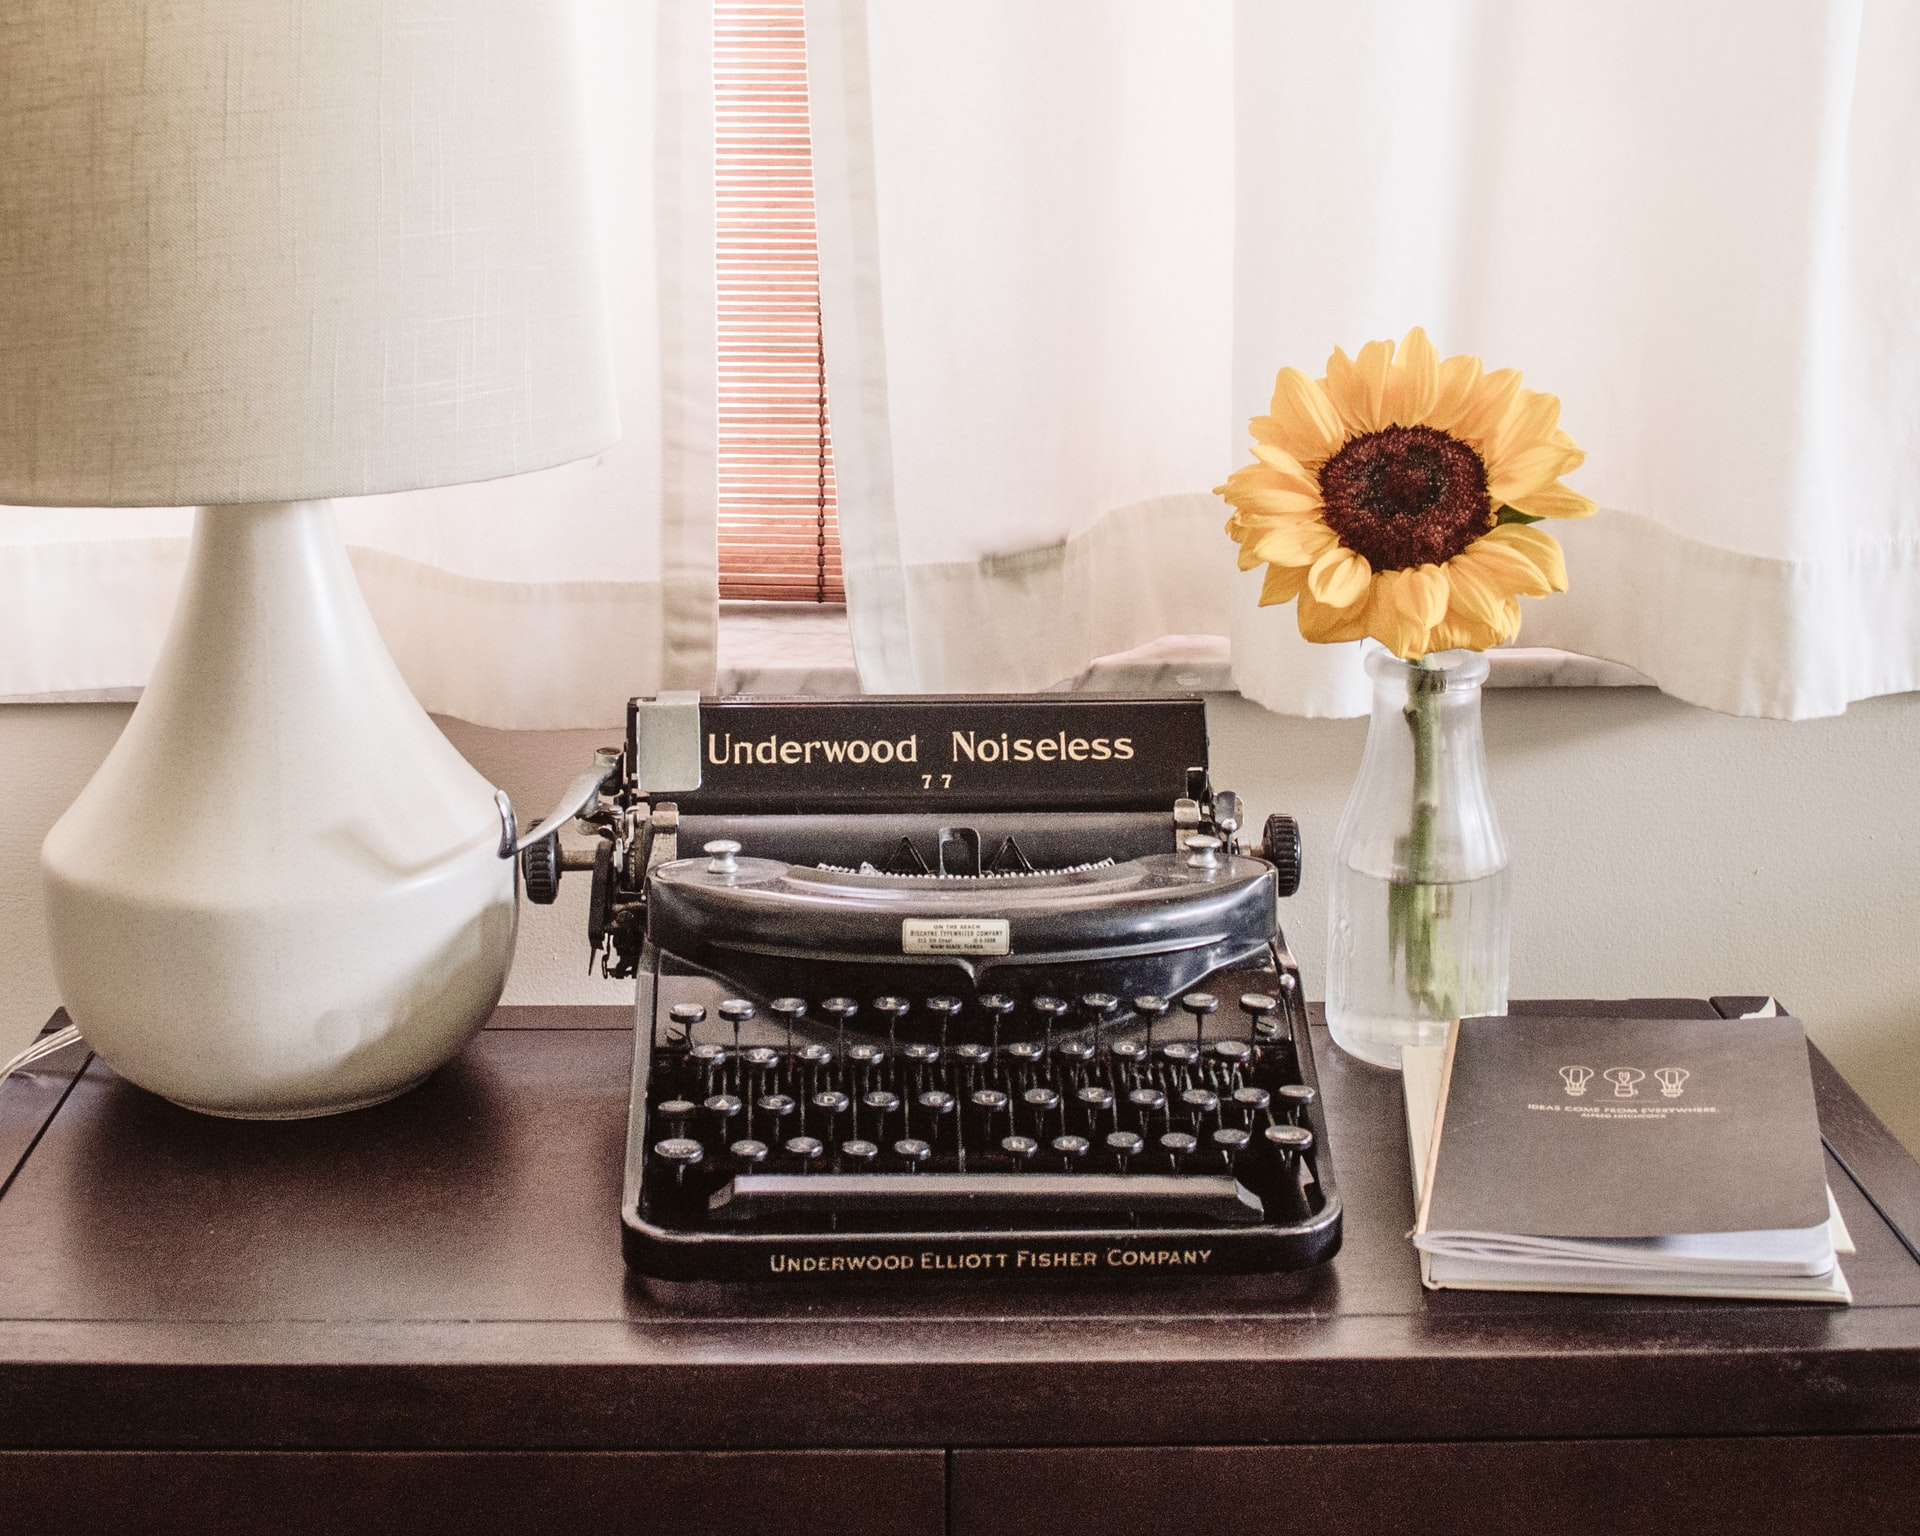 Picture of a typewriter and sunflower as used by an editor